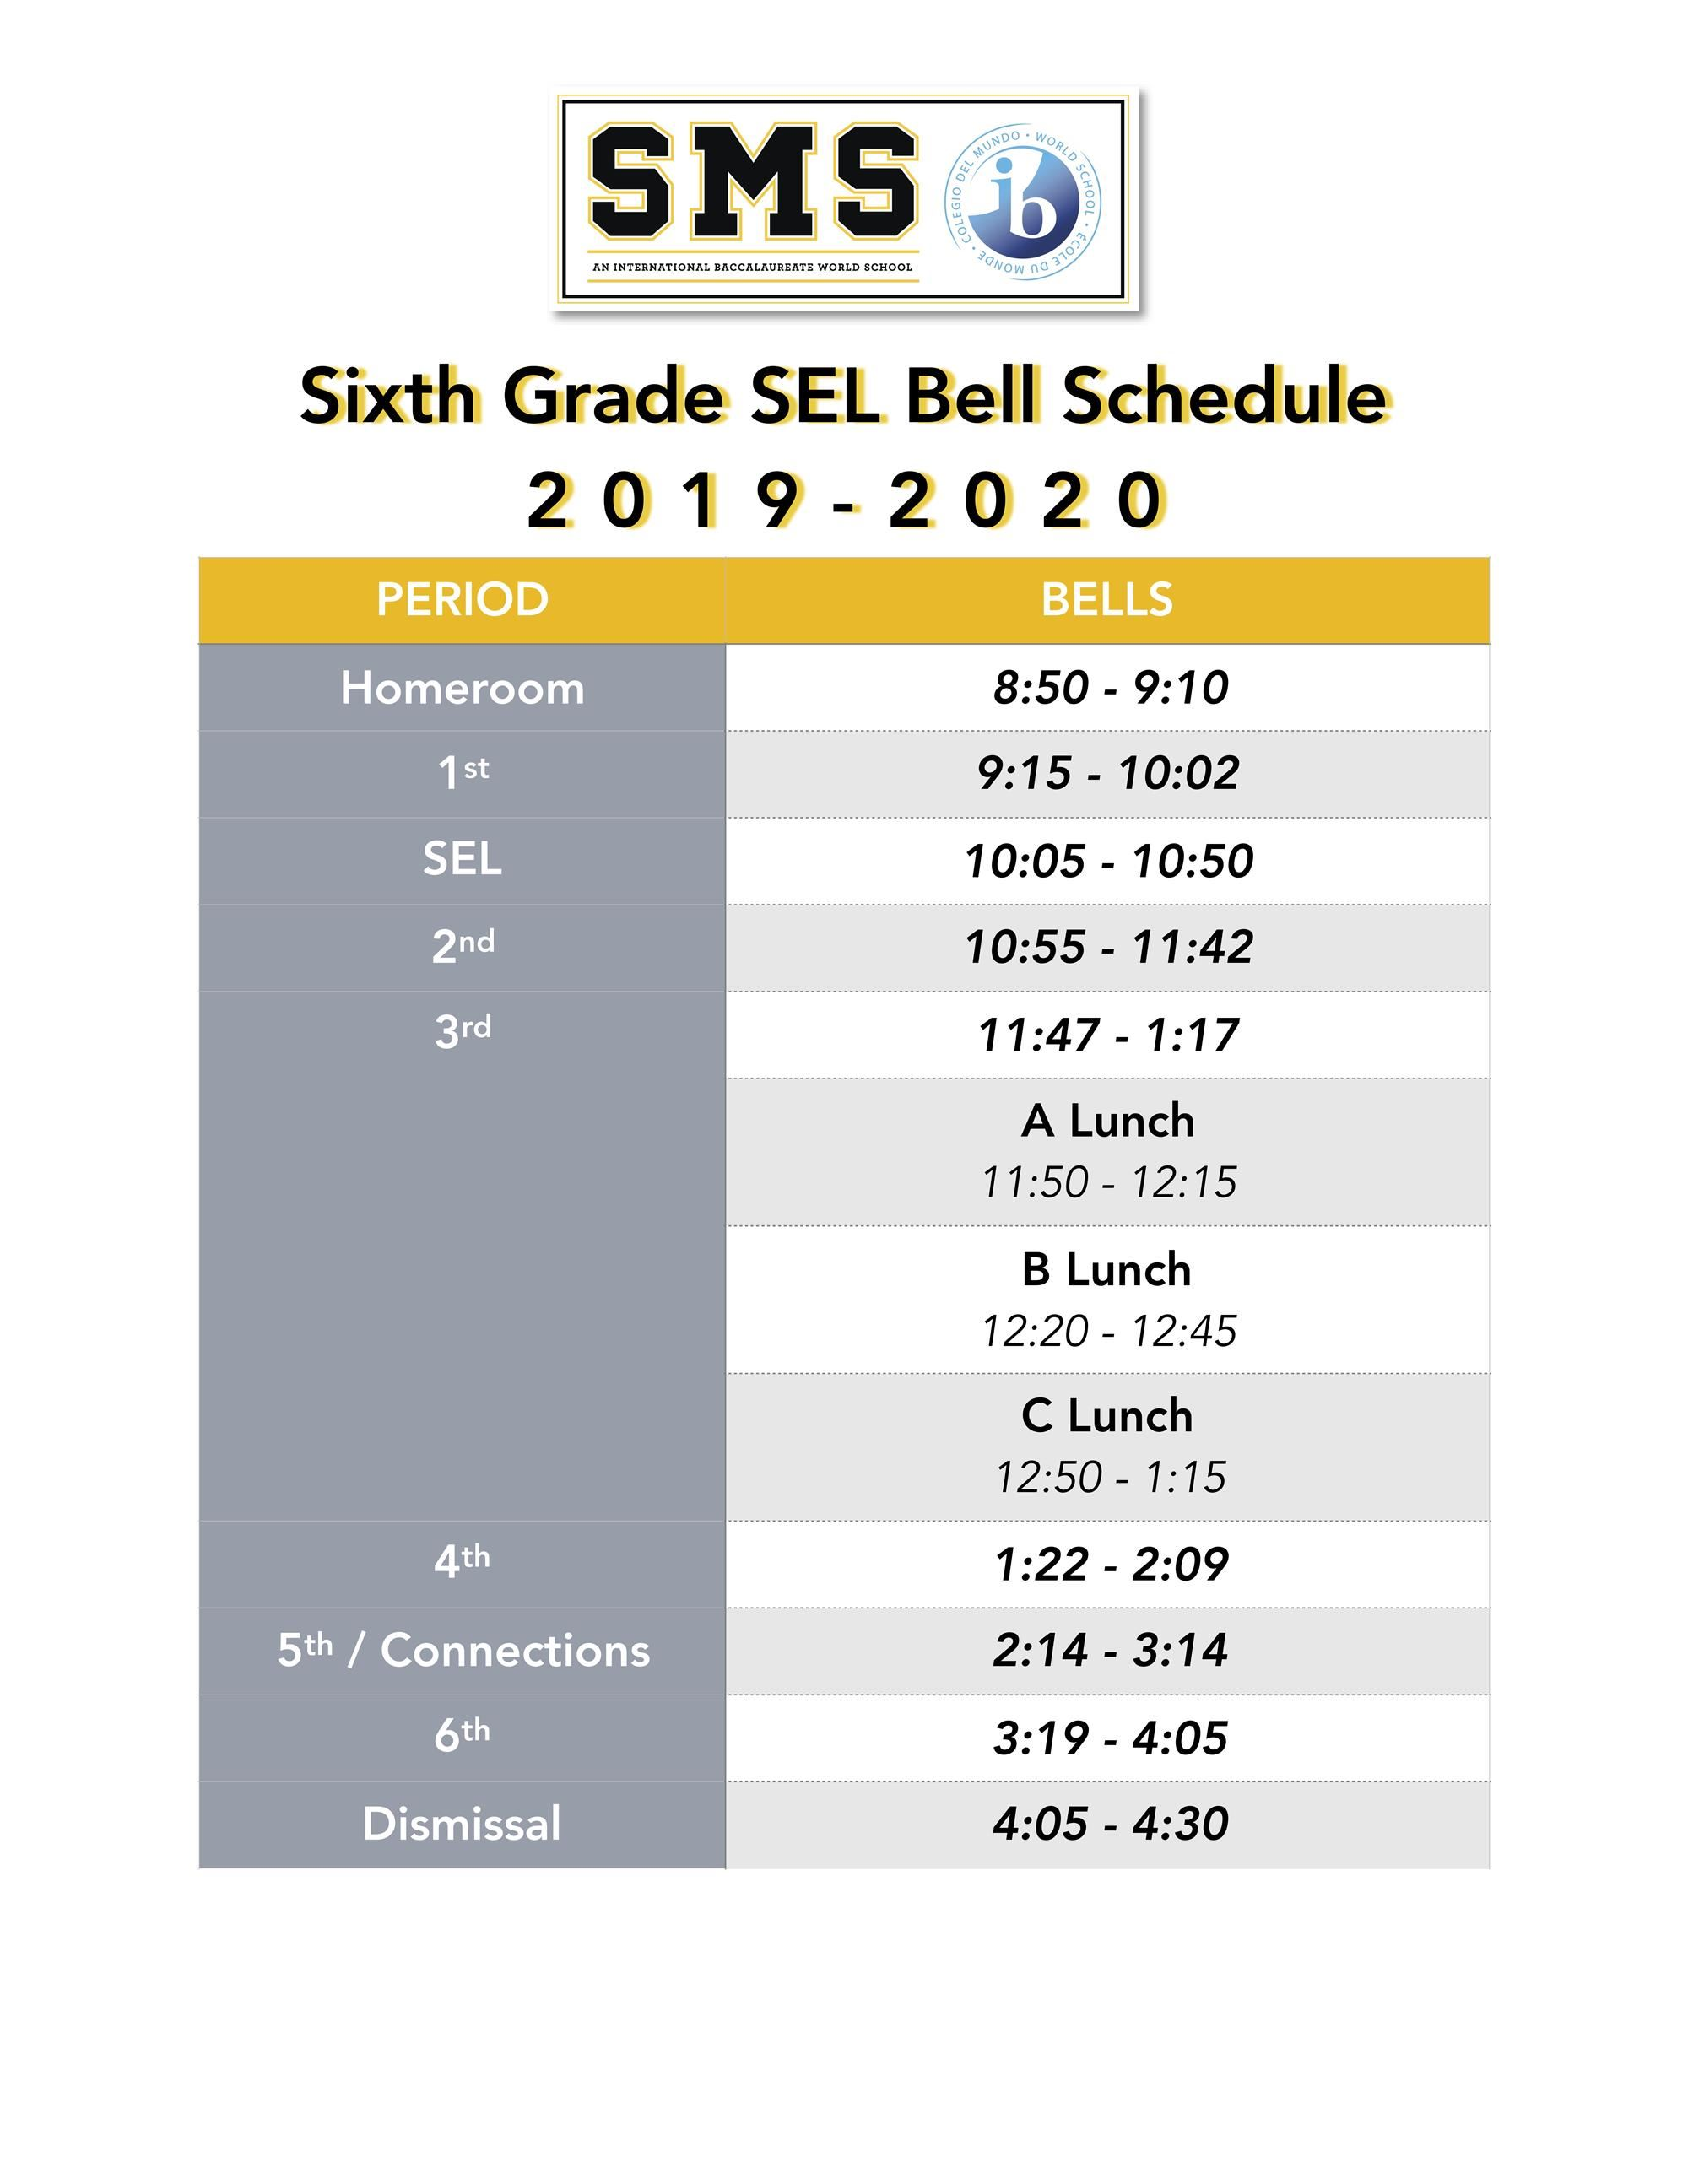 6th grade SEL bells, please contact main office for more info 404-802-5650